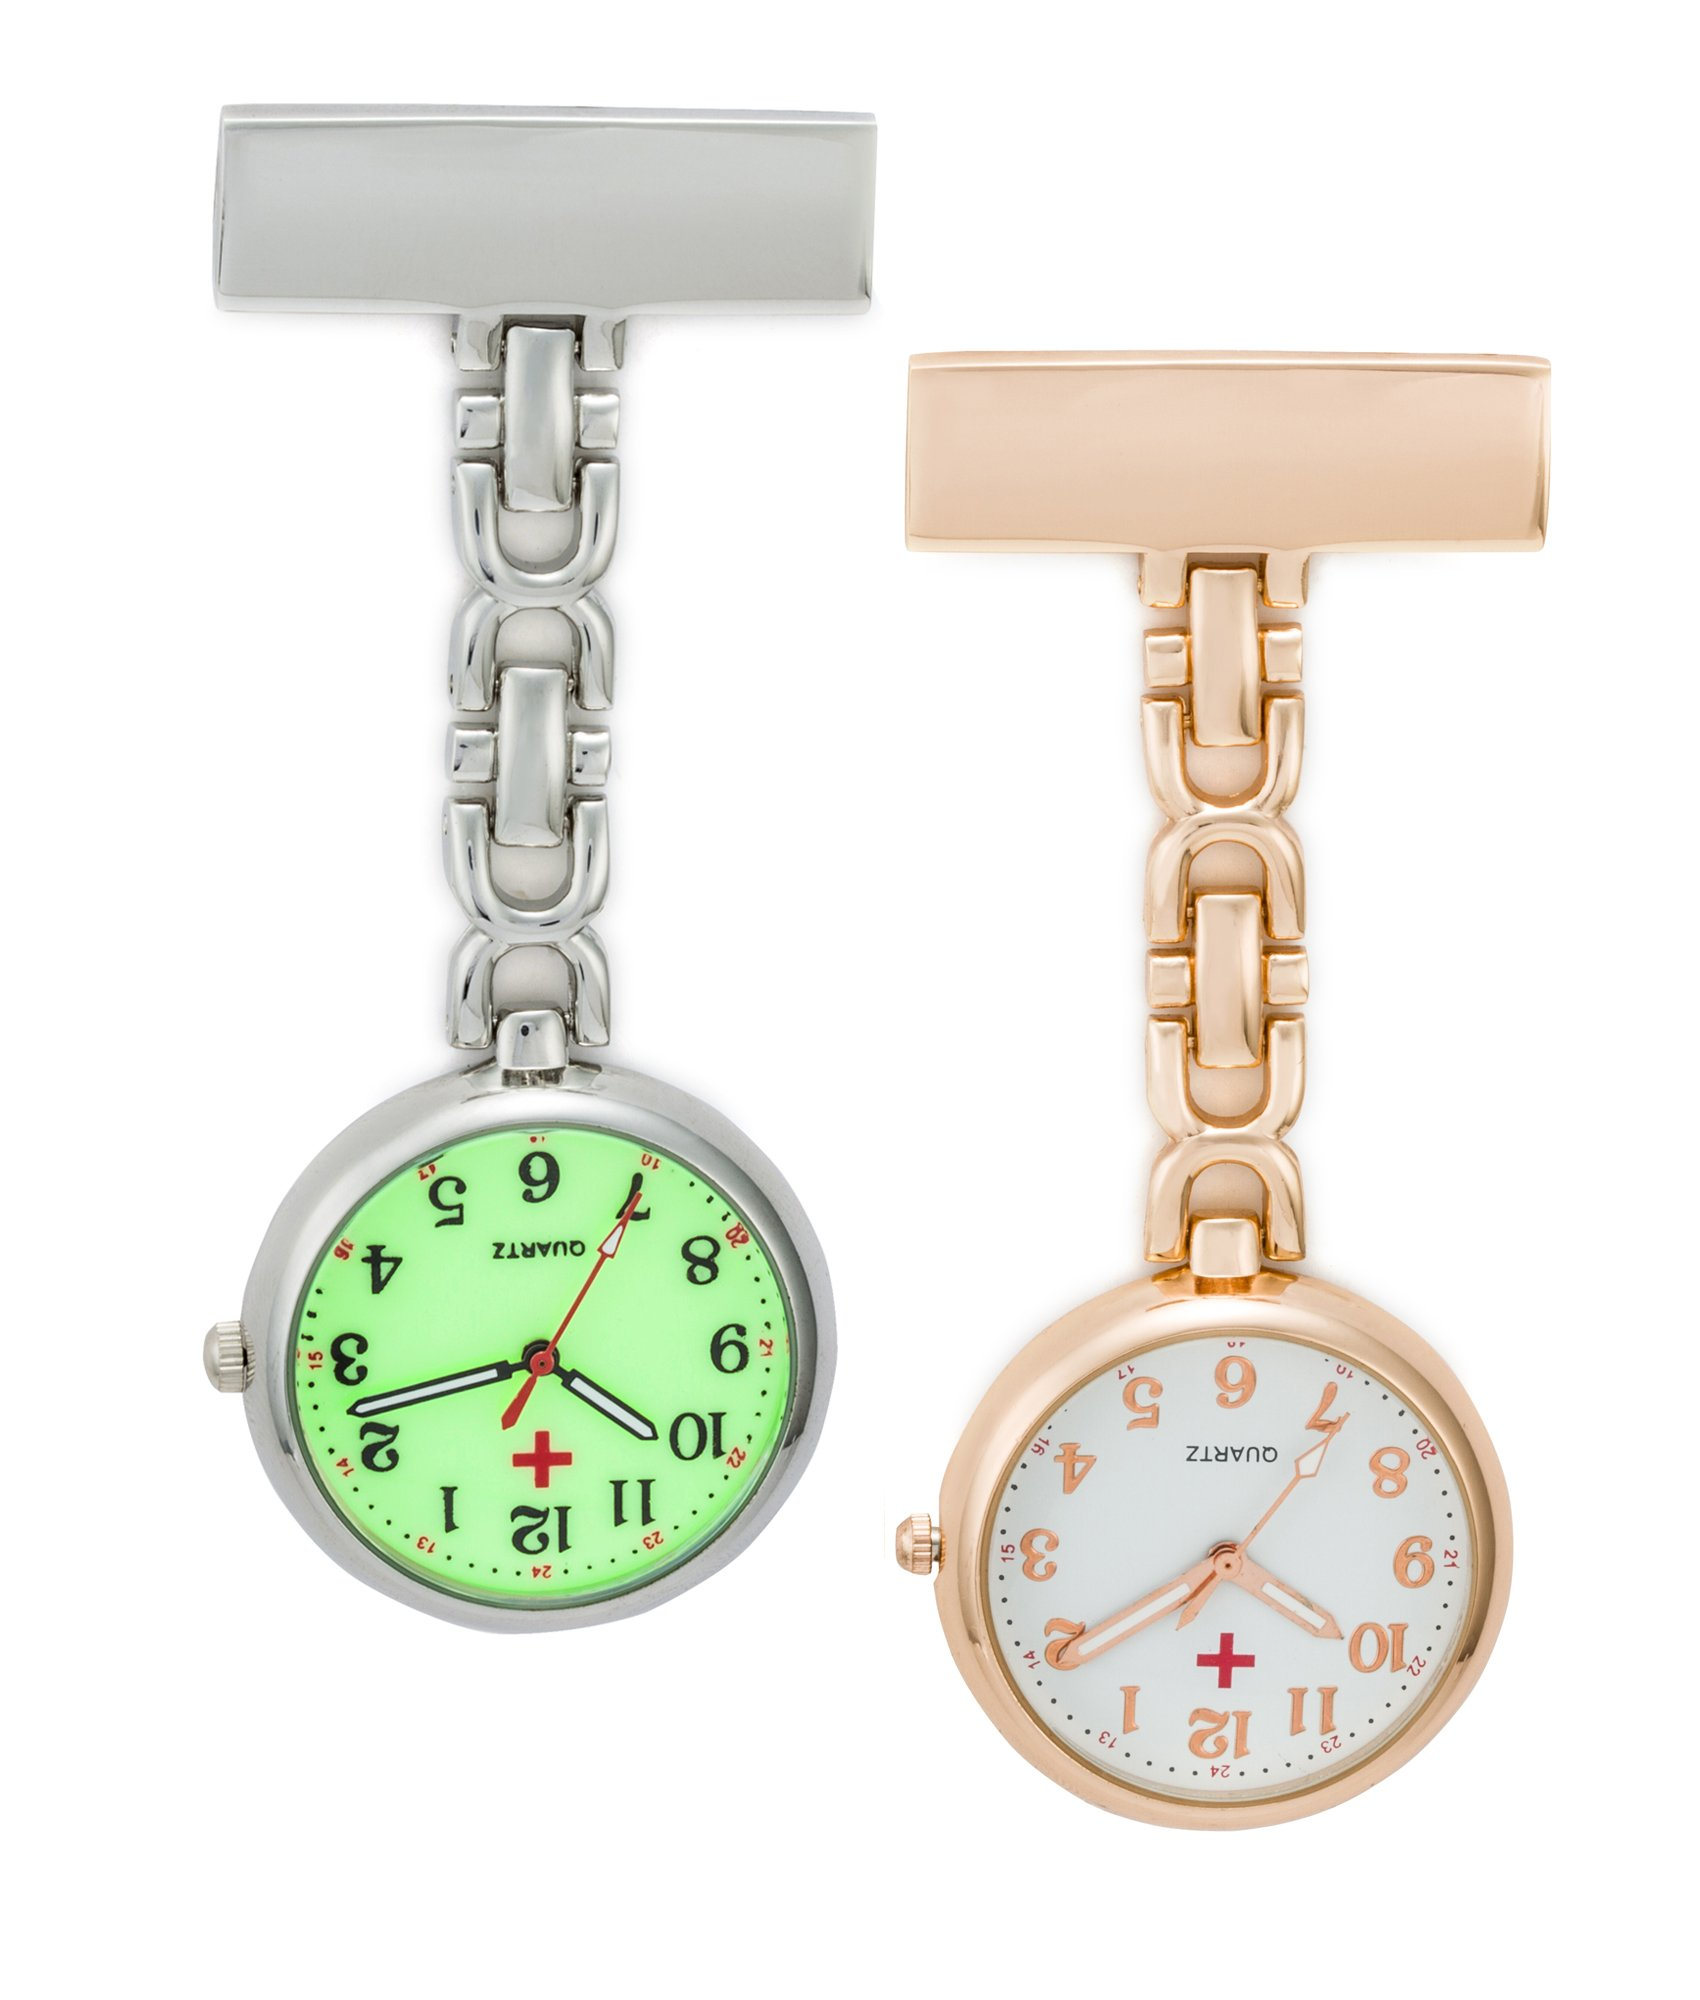 SEWOR Unisex Medical staff Hanging Pocket Watch 2pcs With Brand Leather Gift Box (Rose Gold & Luminous)